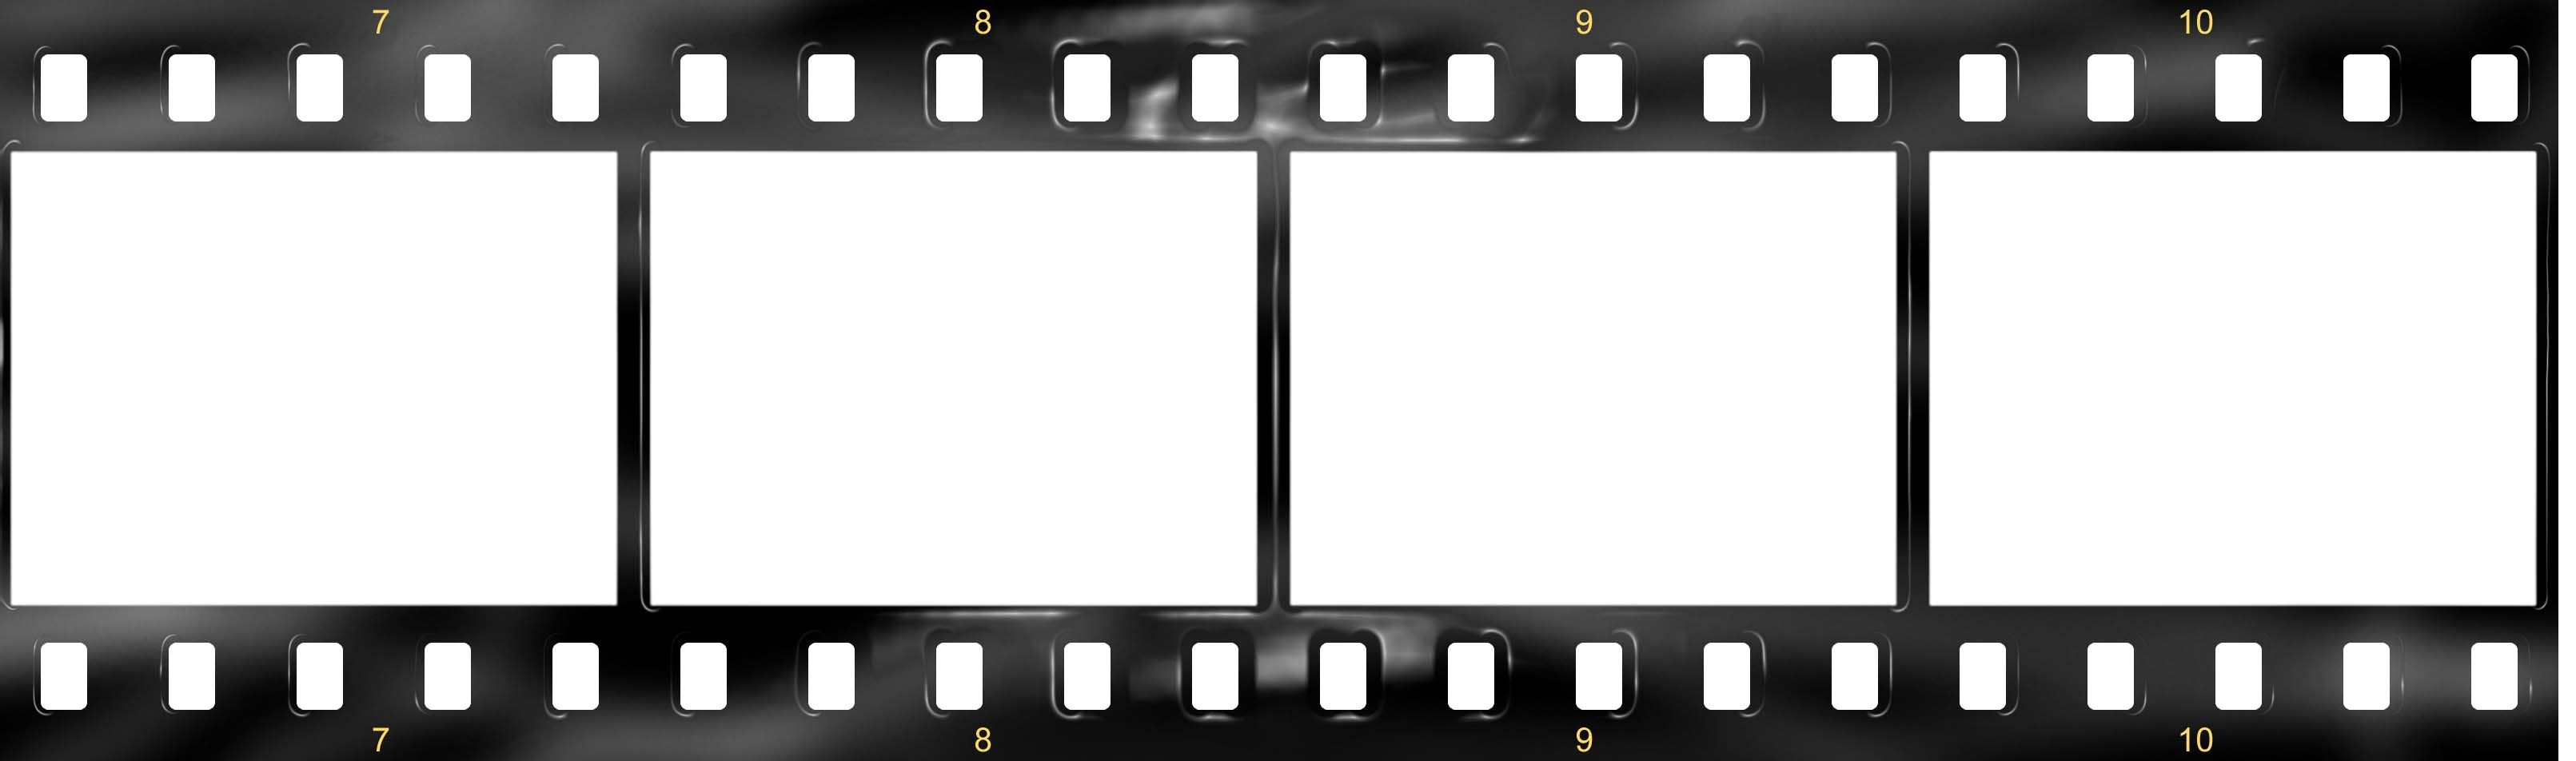 film strip picture template 15 film strip template photoshop psd images film strip